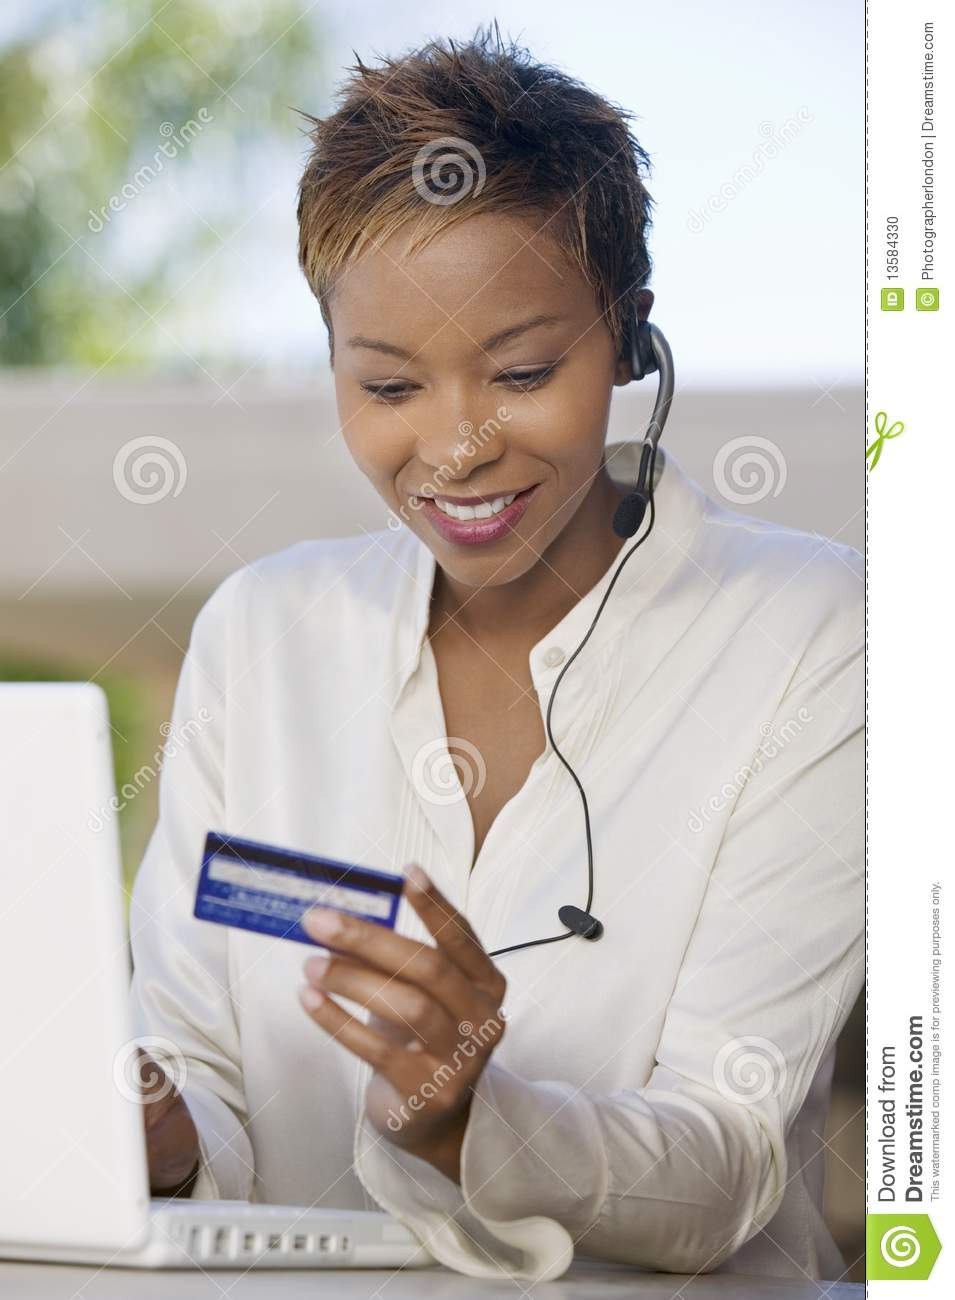 how to make online purchases with a maestro card